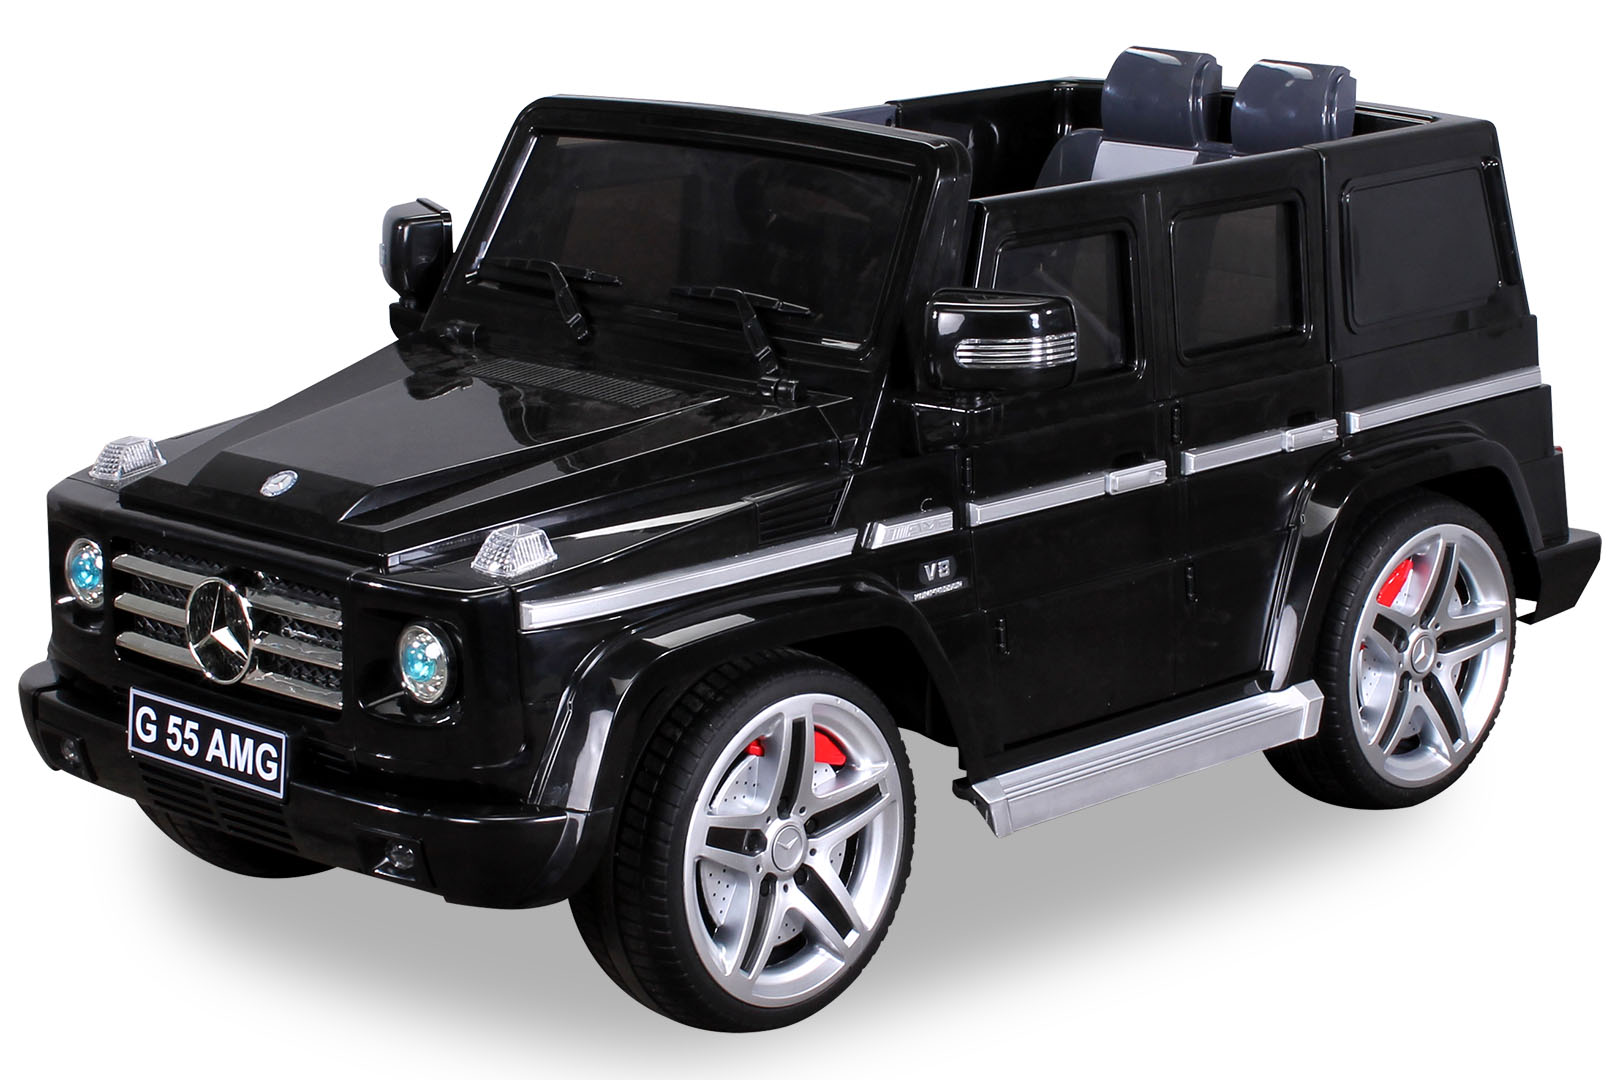 elektro kinderauto mercedes benz amg g55 high door leder sitz jeep suv kinderfahrzeuge. Black Bedroom Furniture Sets. Home Design Ideas